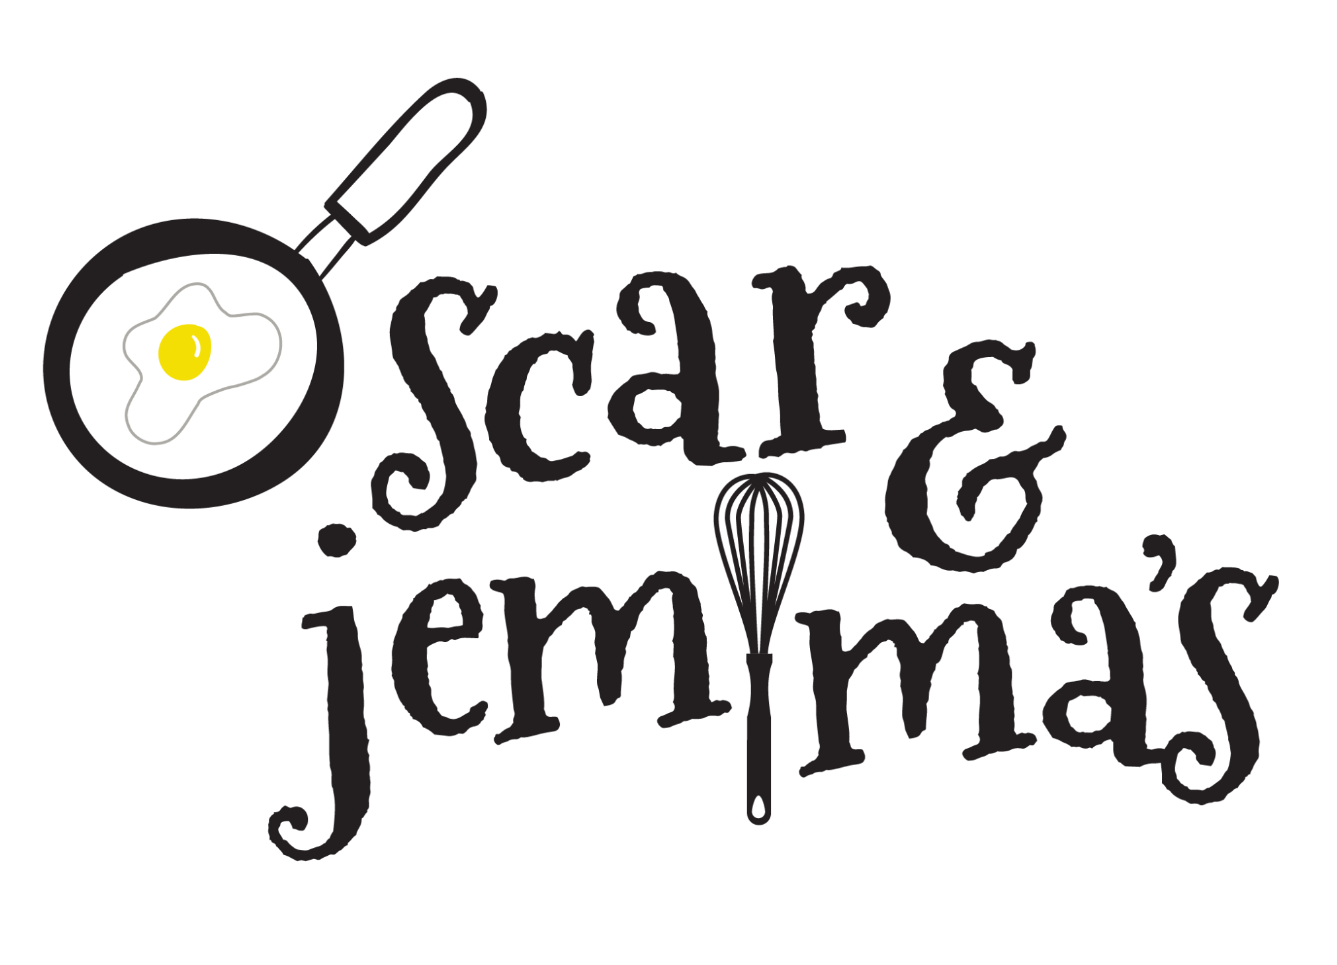 Oscar and Jemima's